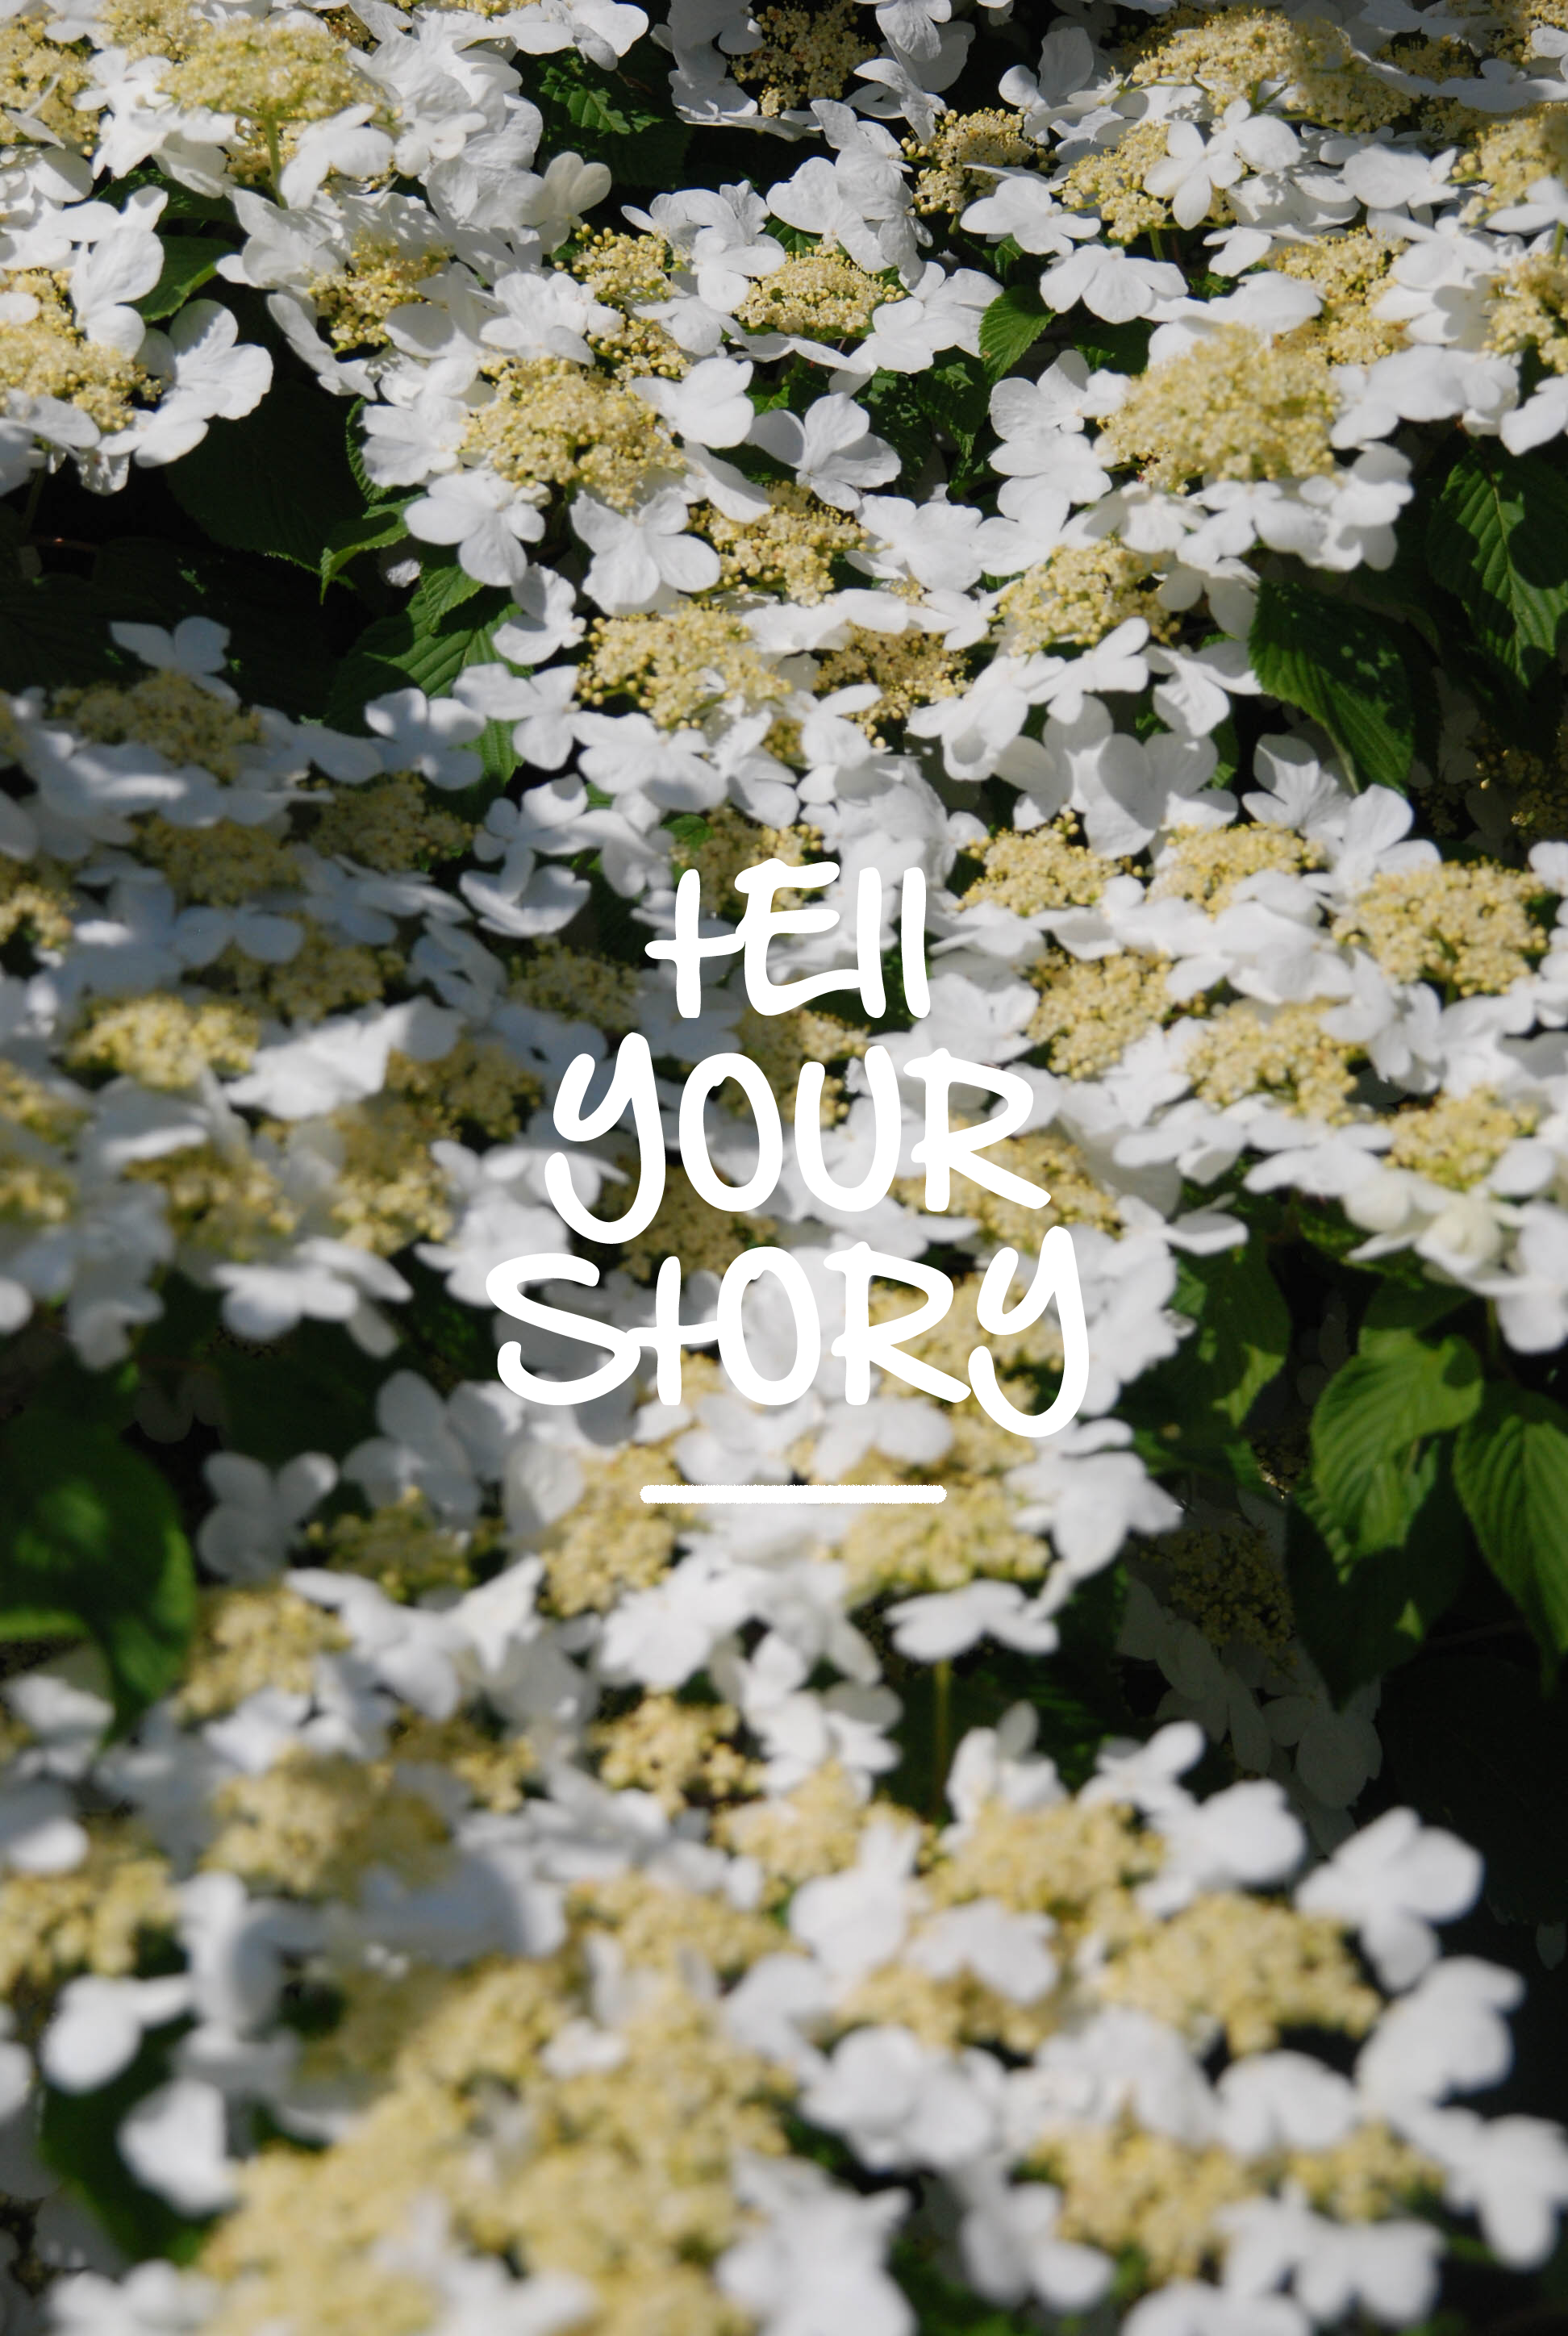 TellYourStory_Flowers